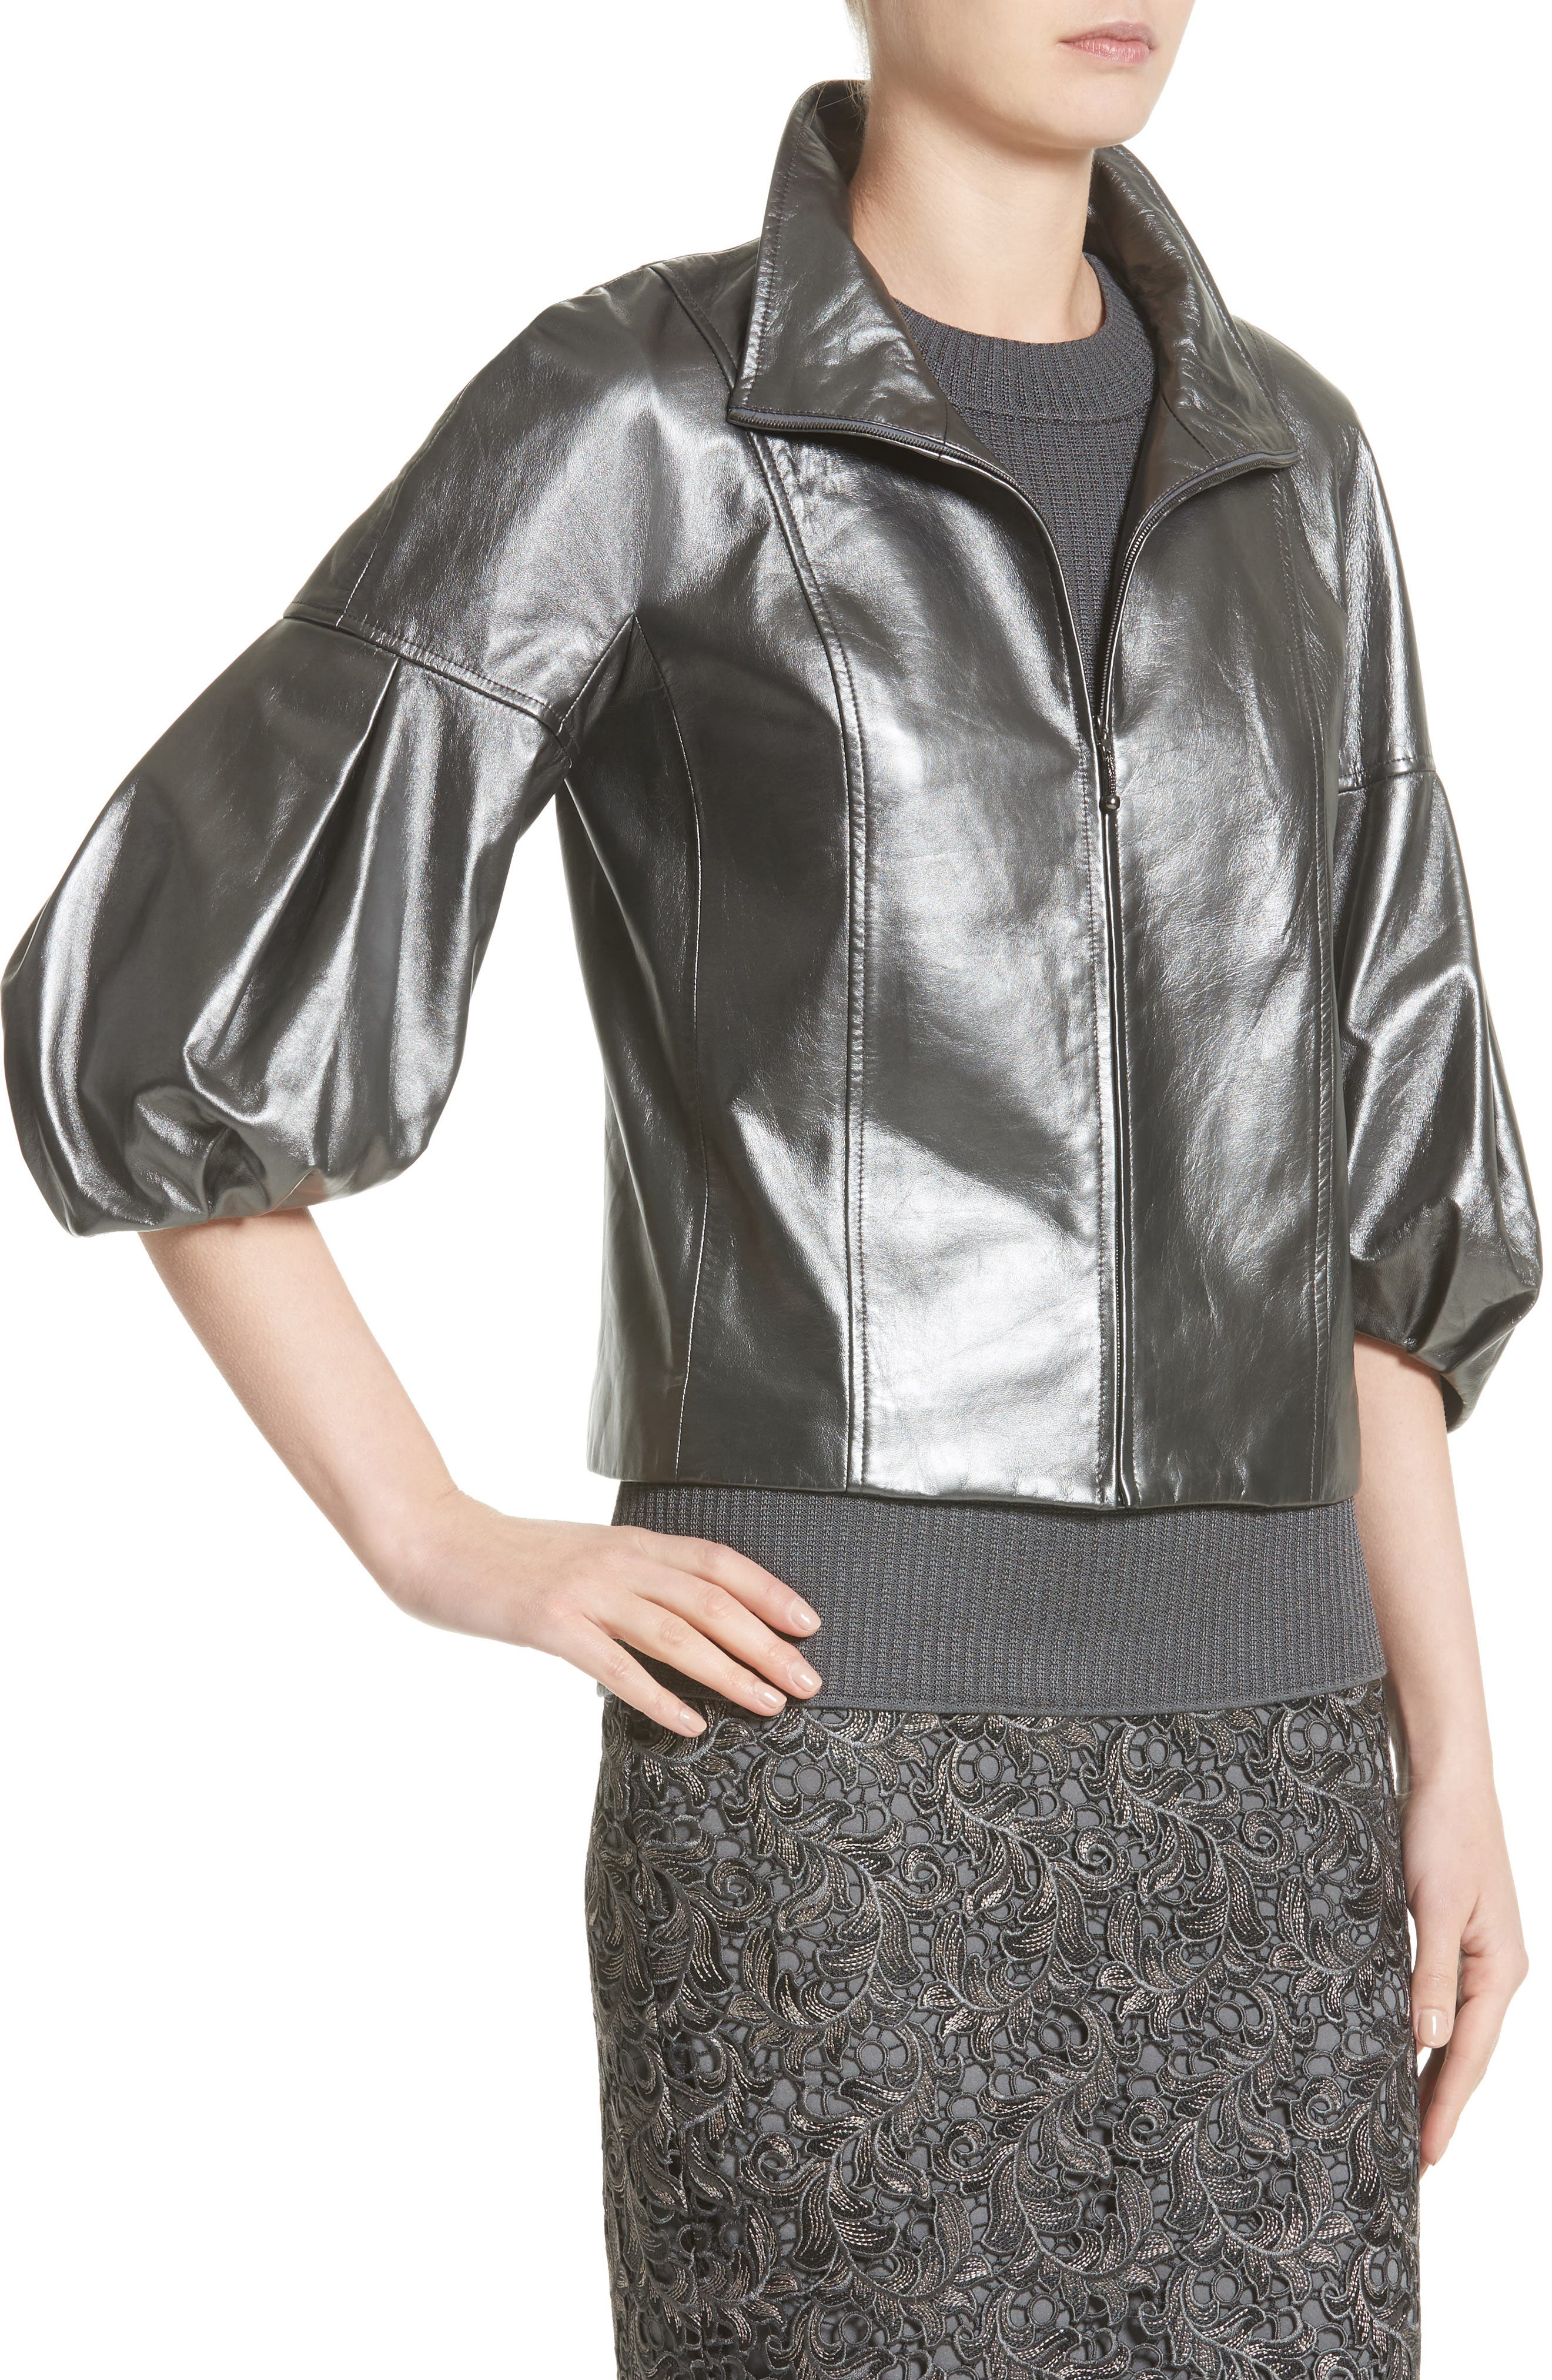 Pearlized Nappa Leather Jacket,                             Alternate thumbnail 4, color,                             020